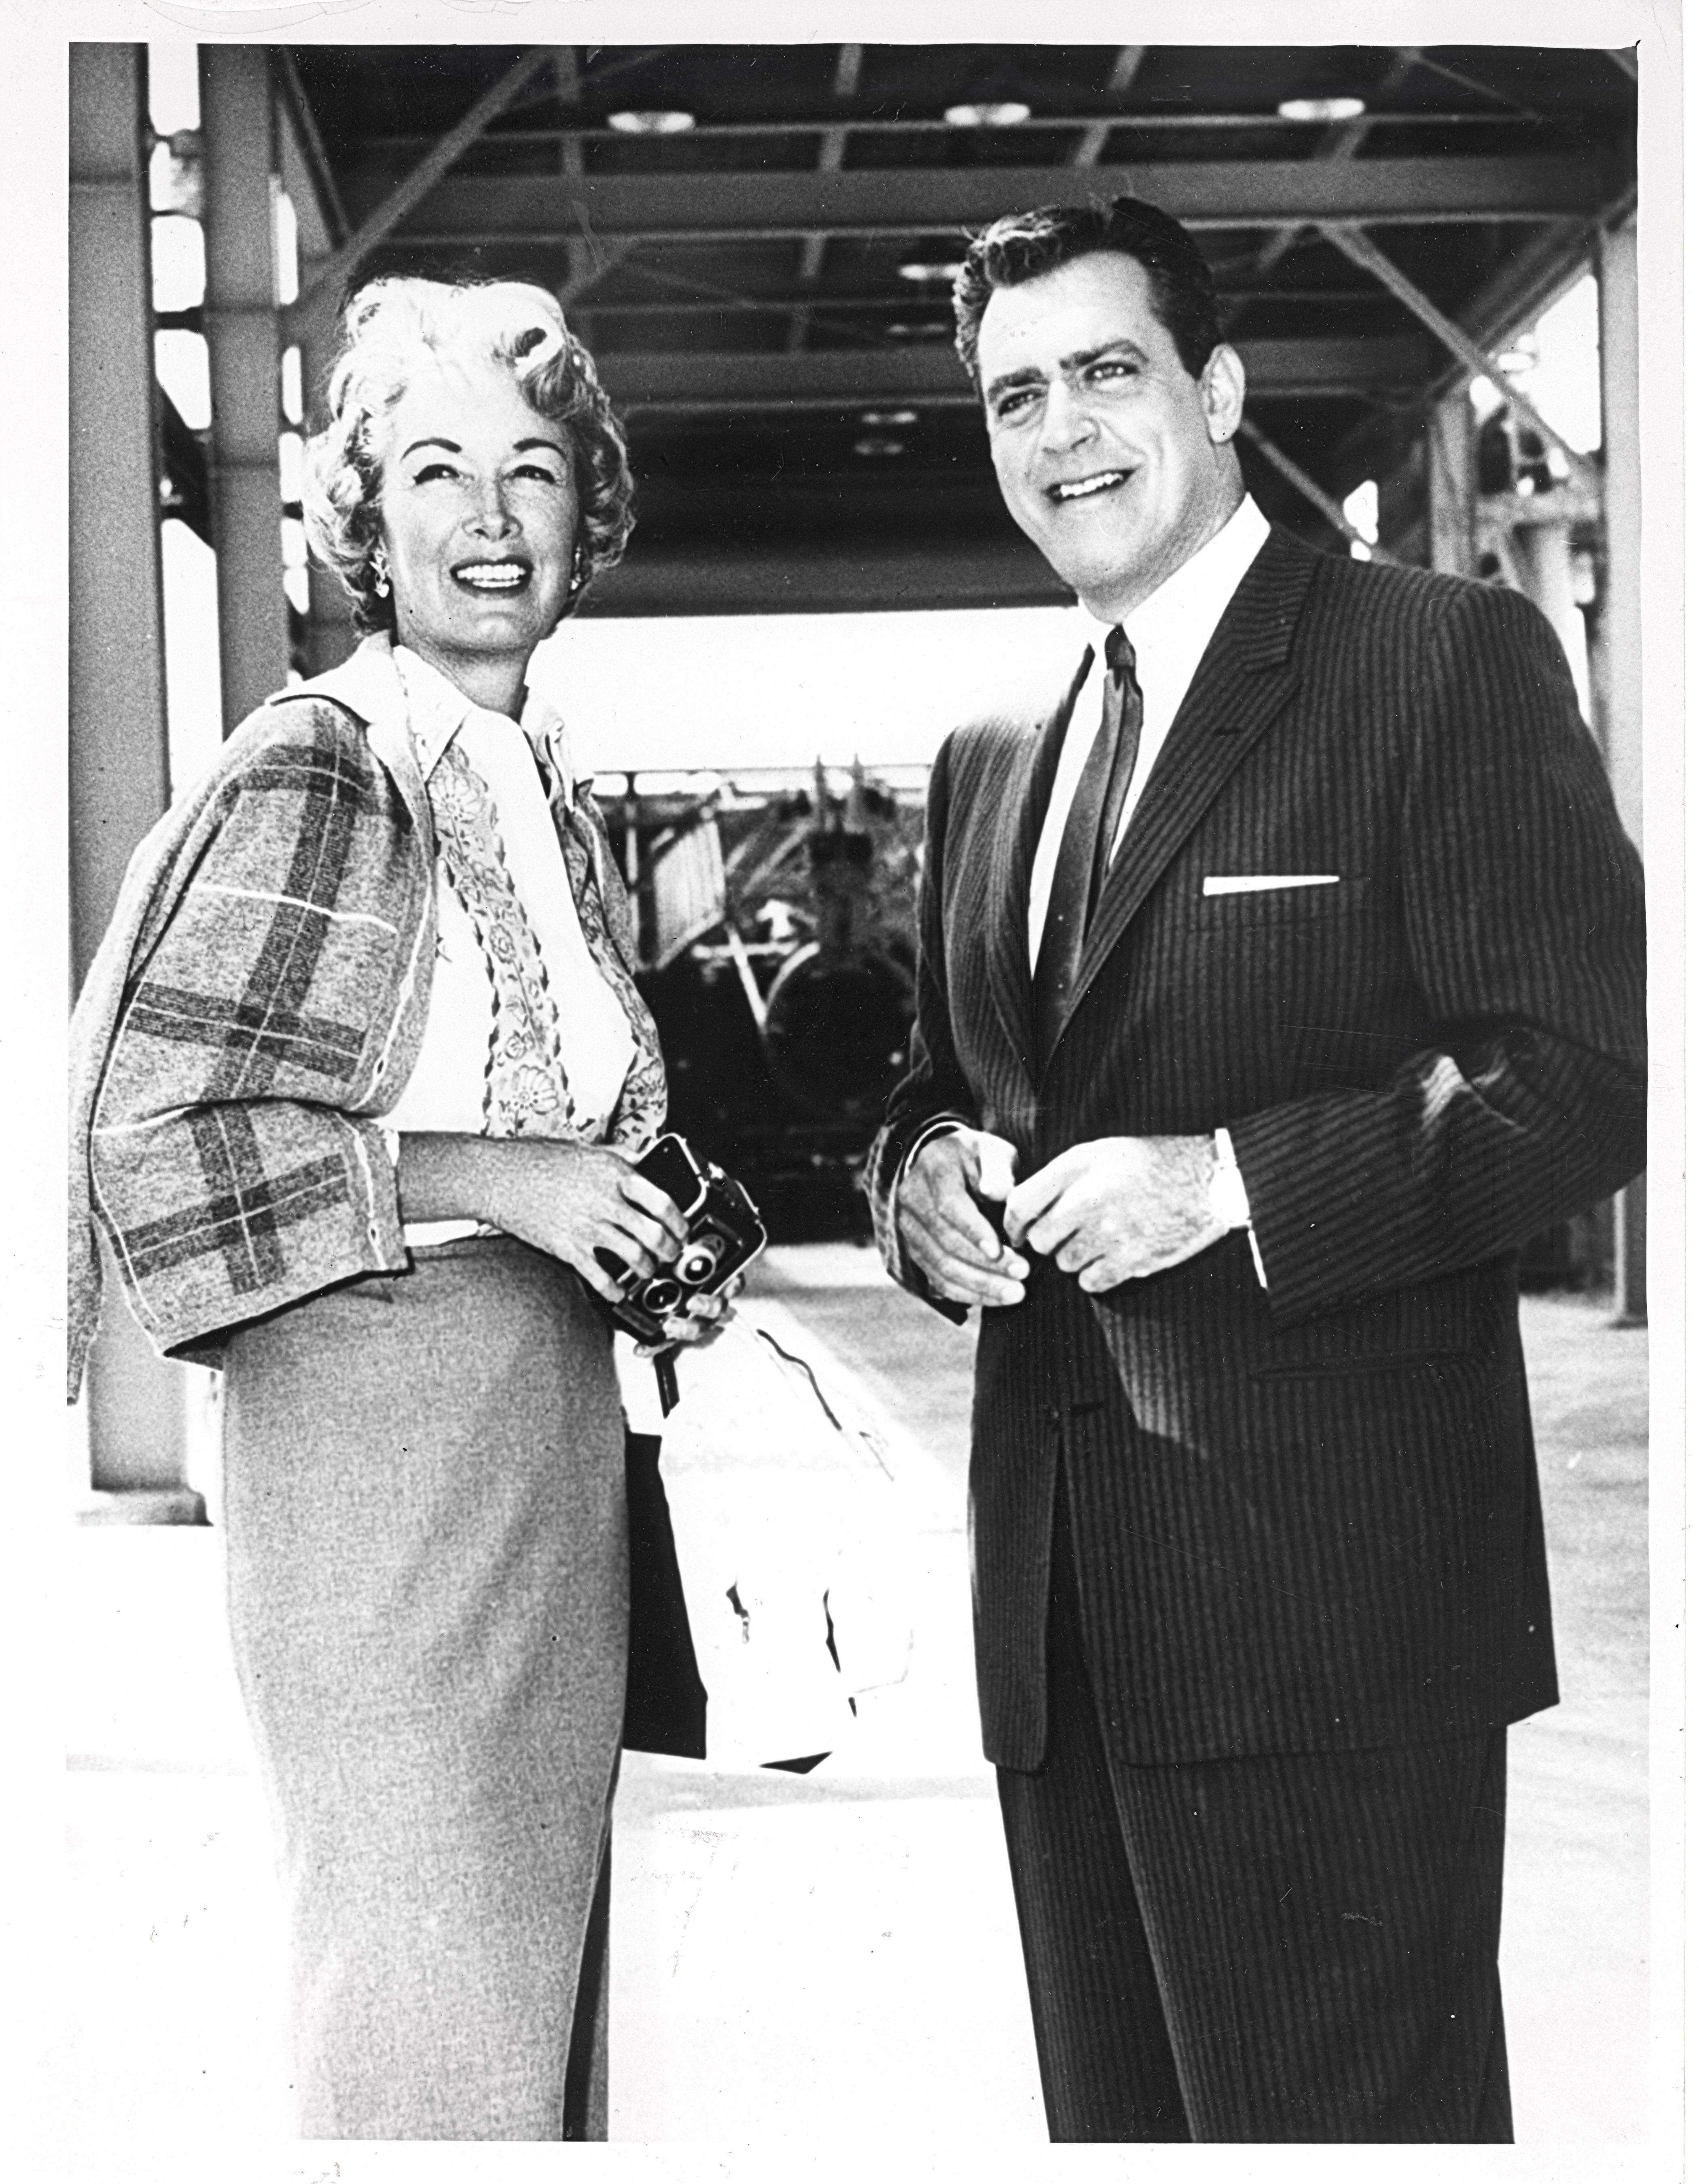 Gail Patrick Executive Producer Of The Perry Mason Tv Series 1957 1966 With Star Raymond Burr From T Perry Mason Perry Mason Tv Series Hollywood Pictures